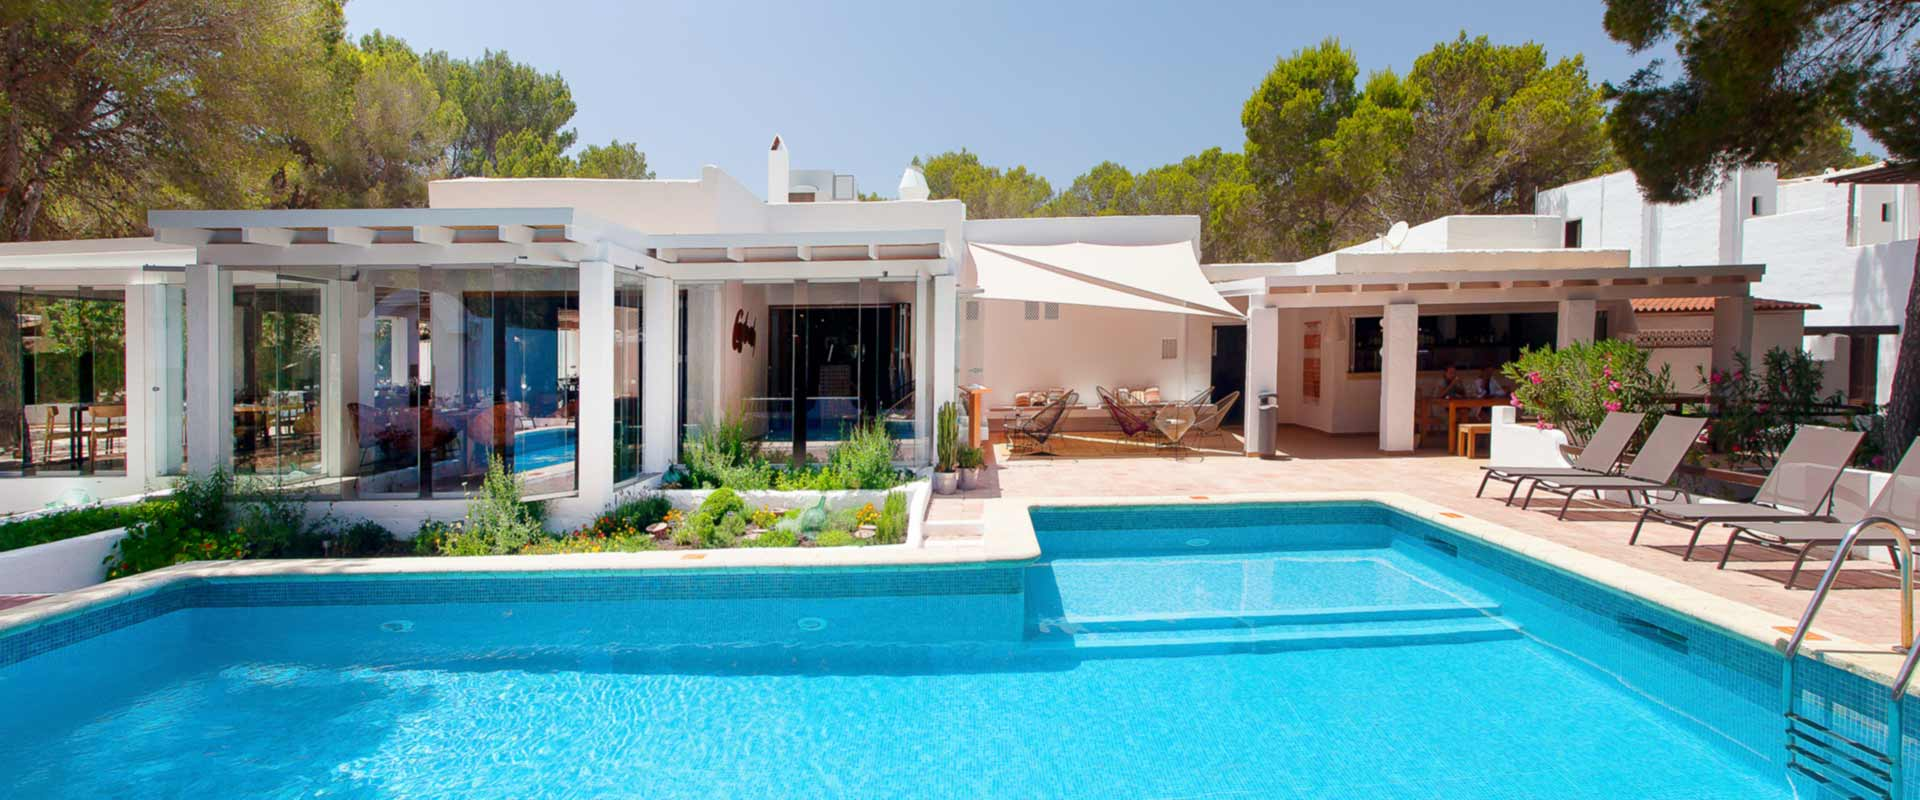 H tel casbah formentera infrarouge for Hotels formentera